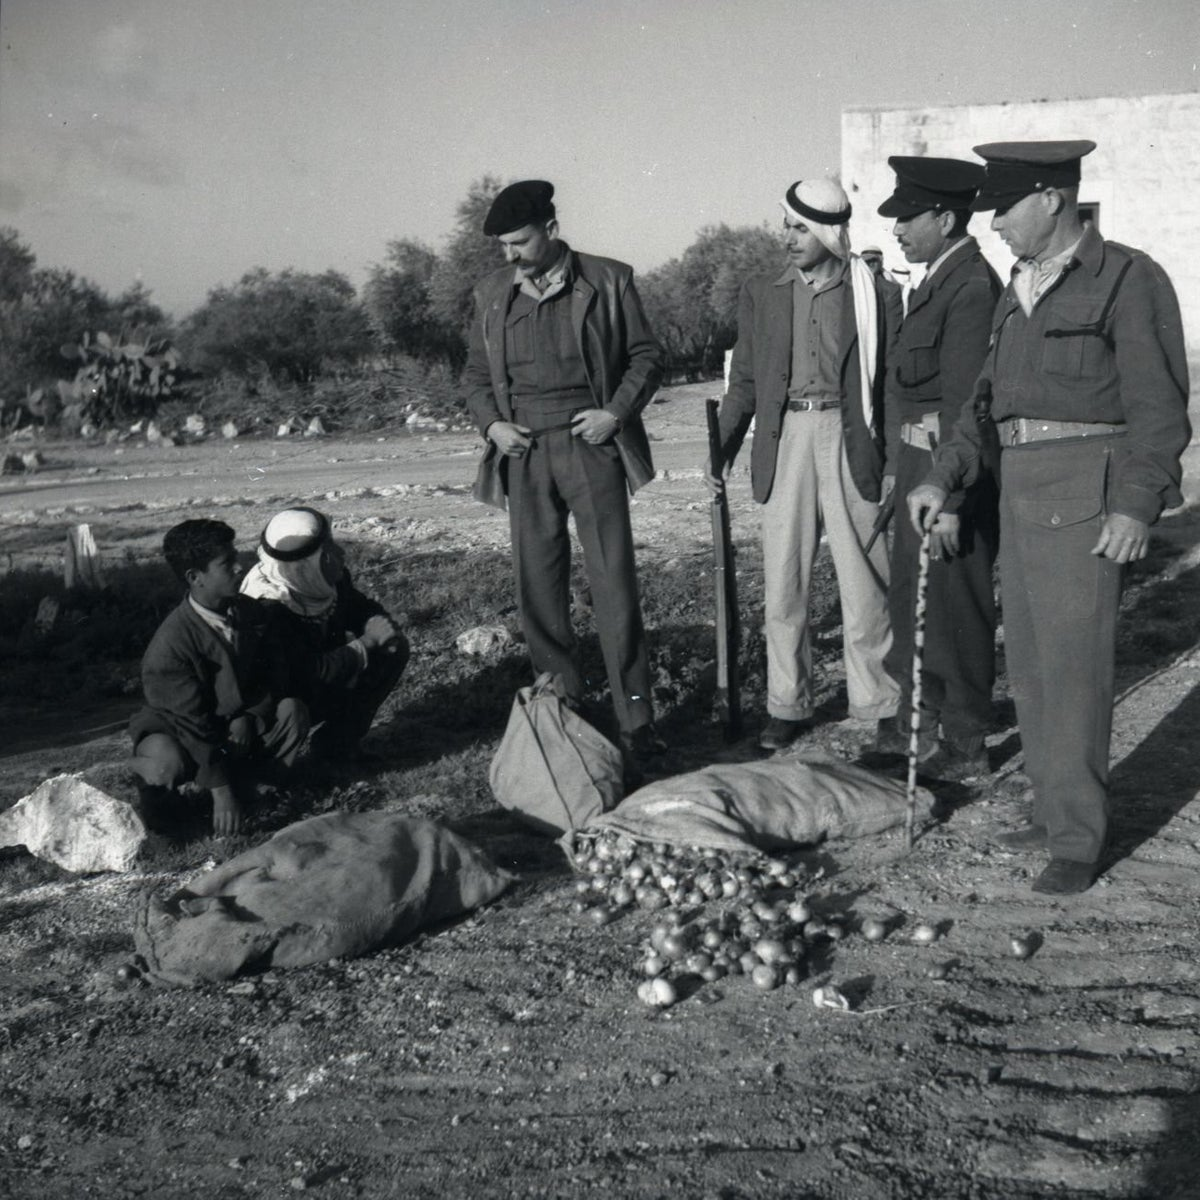 Military policemen inspect a suspicious sack of onions found in possession of Arab citizens, in 1952.